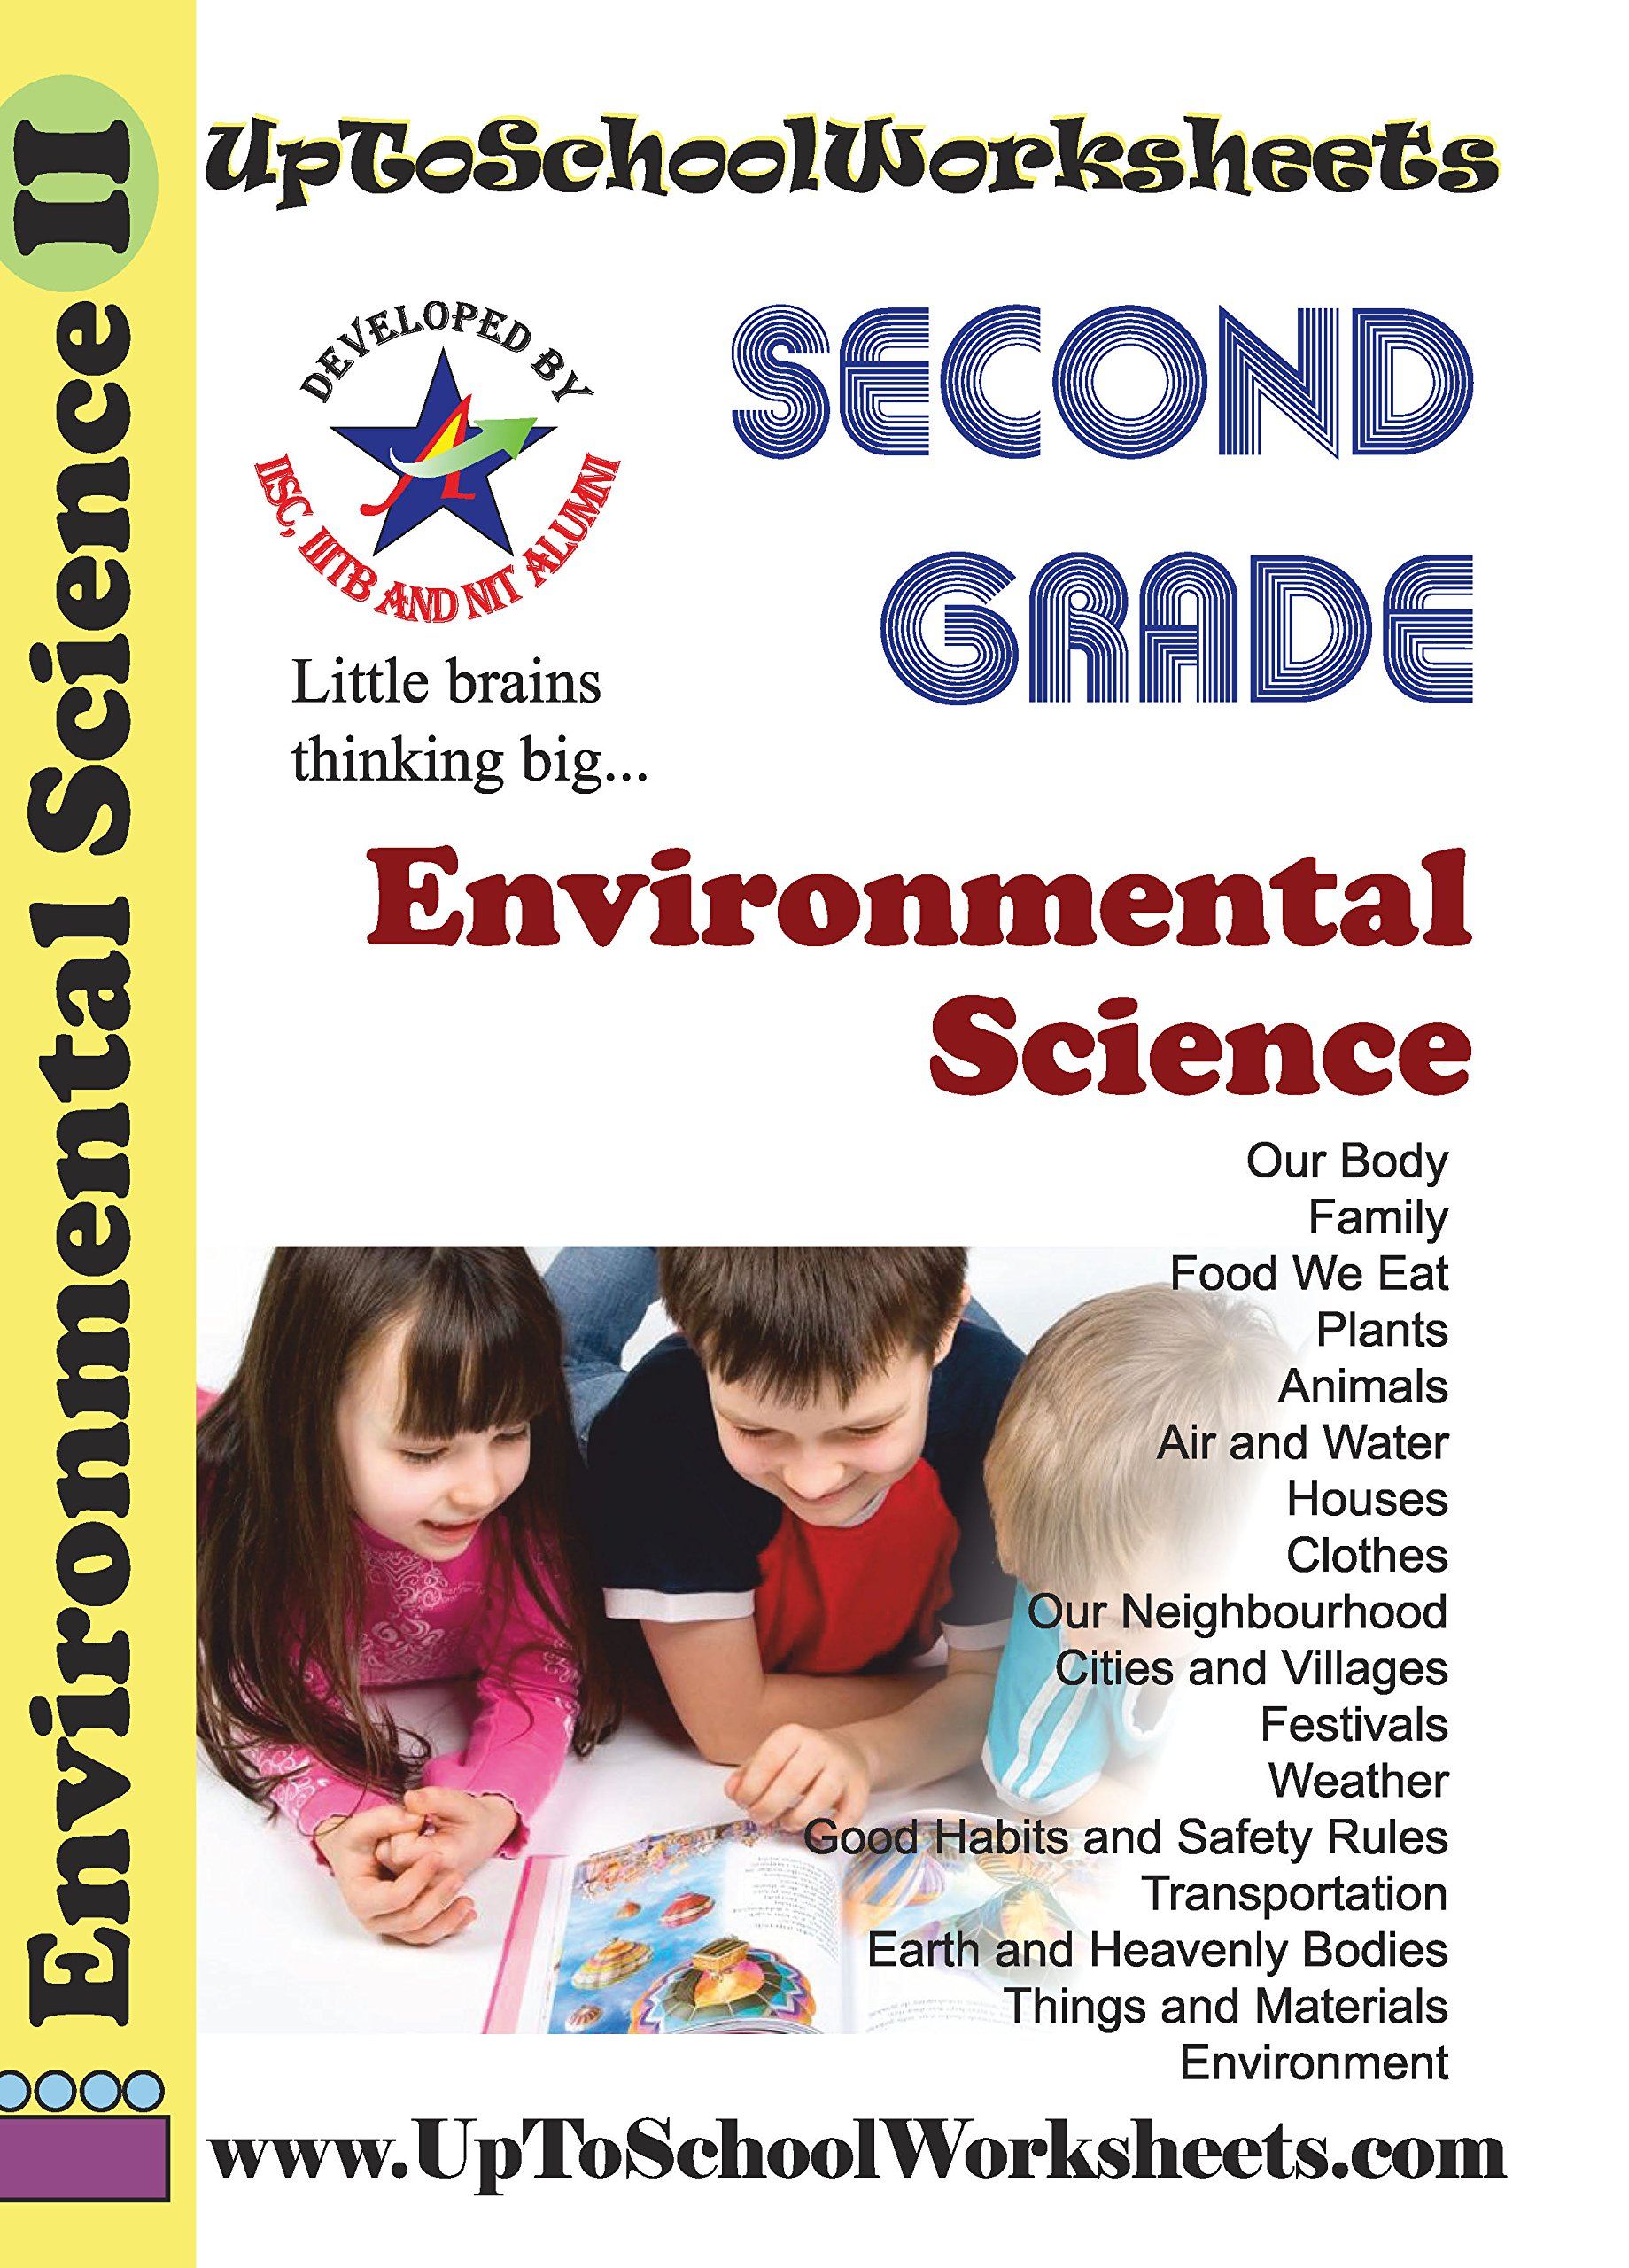 Class 2 Environment Science Worksheets Workbook Cbse Icse With Answer Key Amazon In Uptoschoolworksheets Books